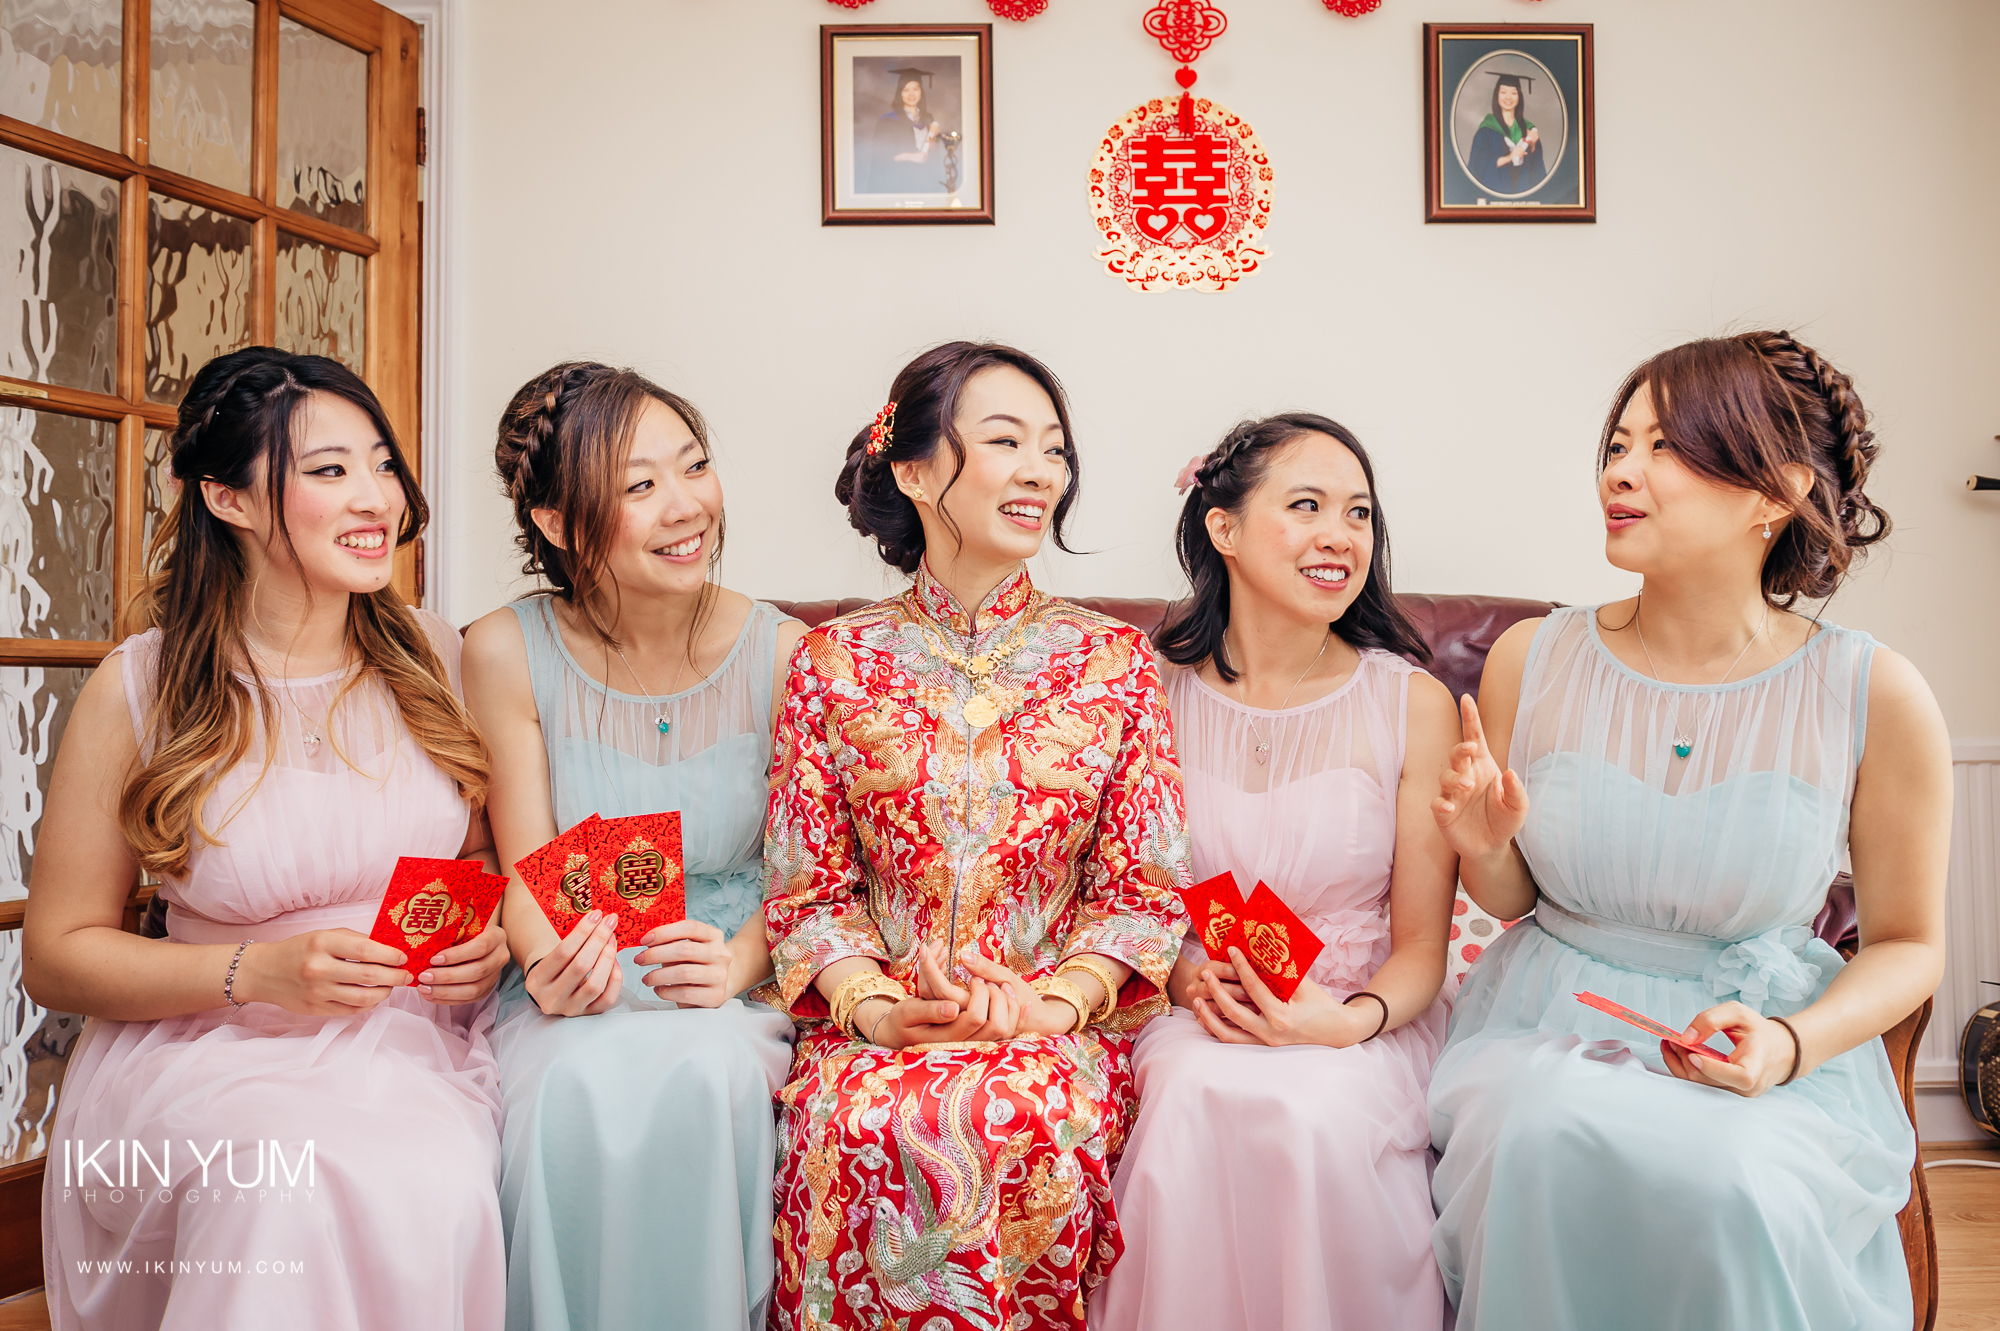 Sylvianne & Chun Wedding Day - Ikin Yum Photography-038.jpg